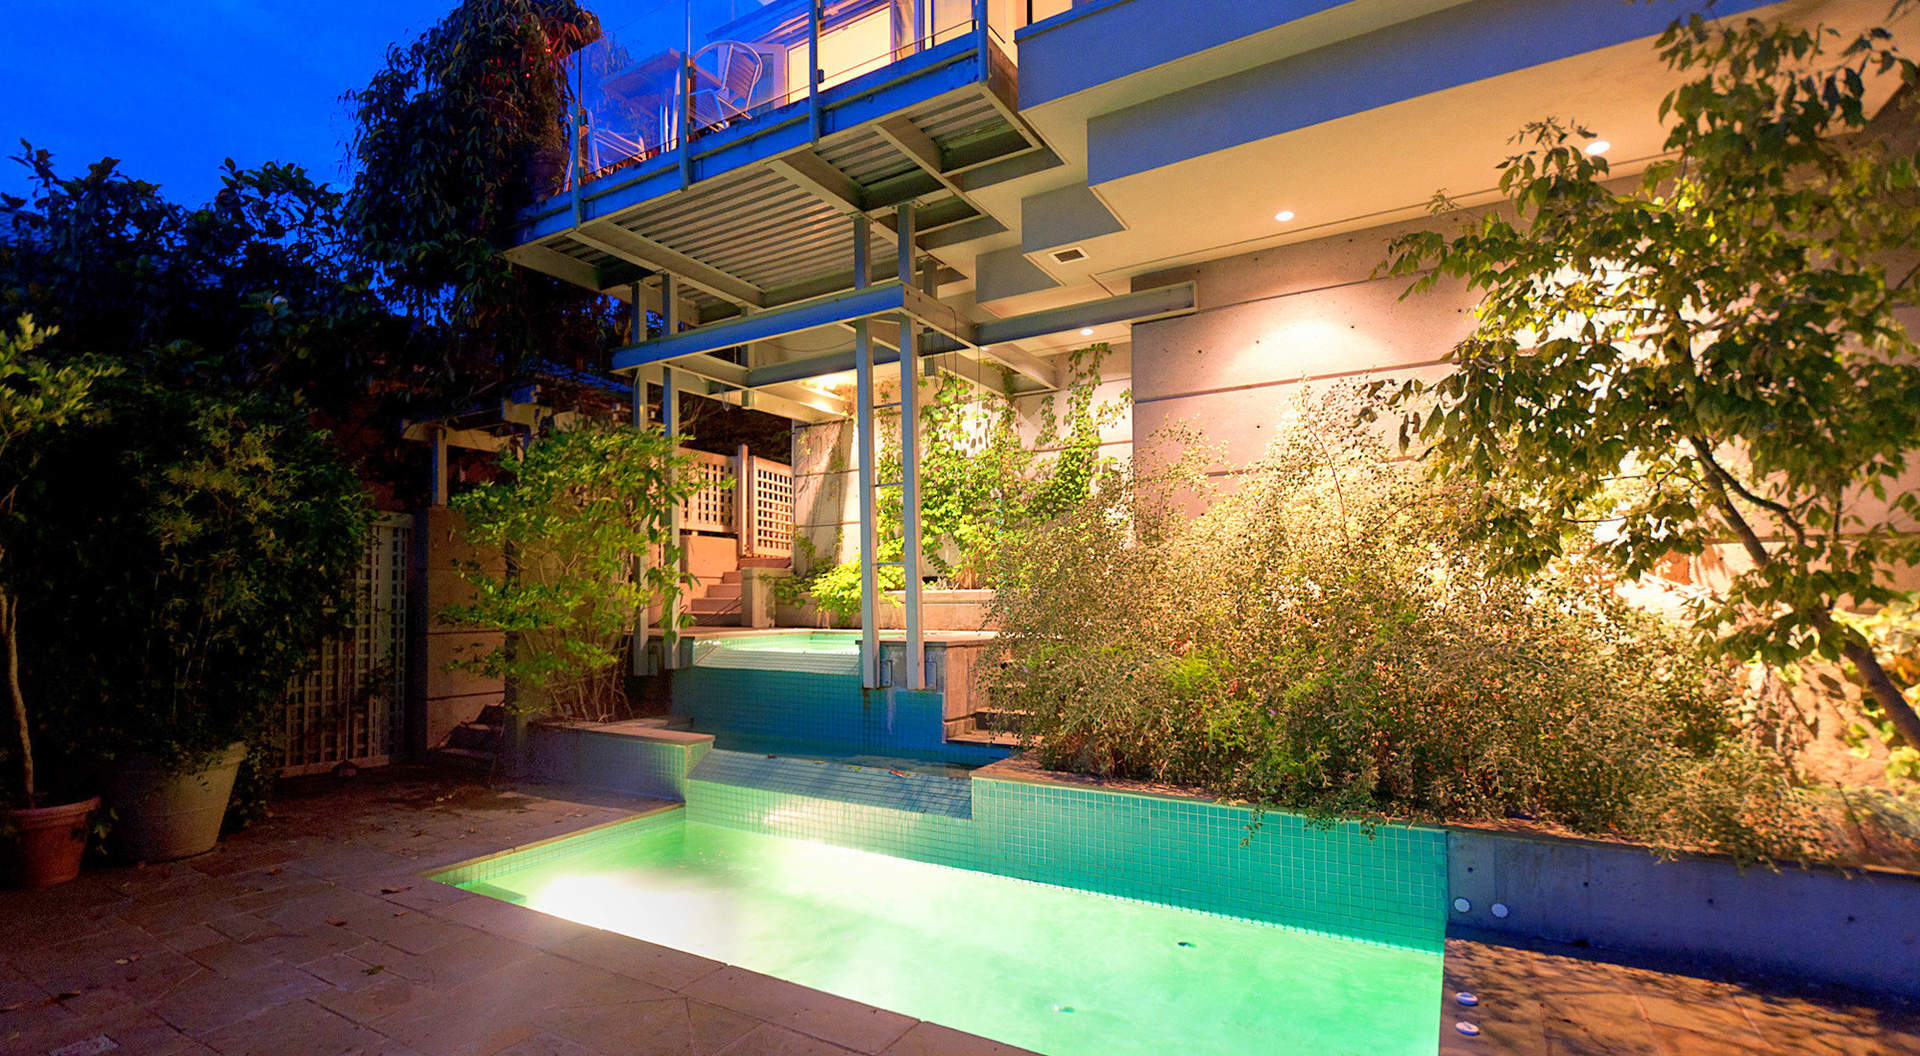 Fabulous Outdoor Plunge Pool & Hot Tub